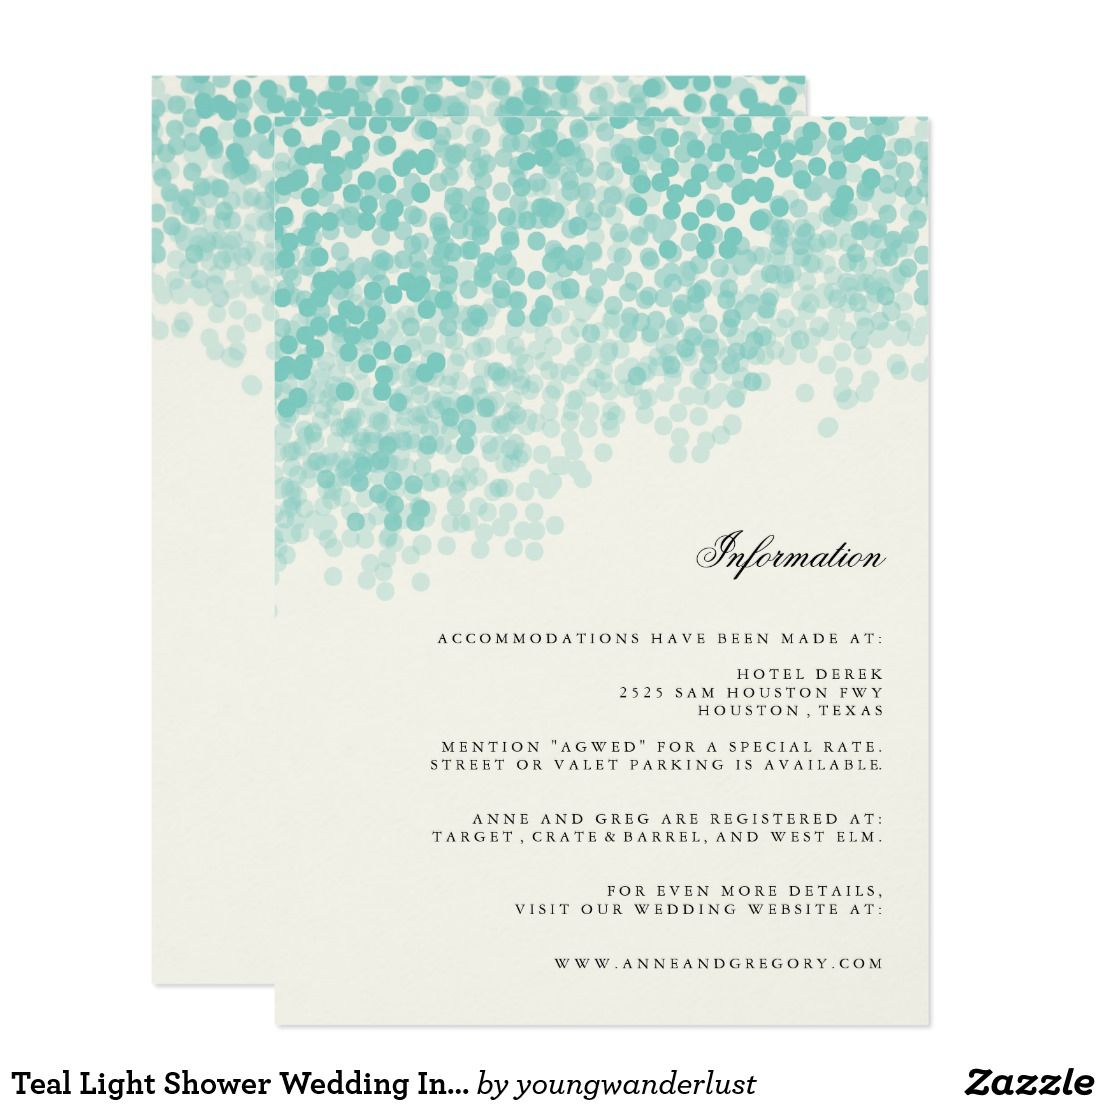 Beach wedding in texas  Teal Light Shower Wedding Information Insert Card  Wedding suite